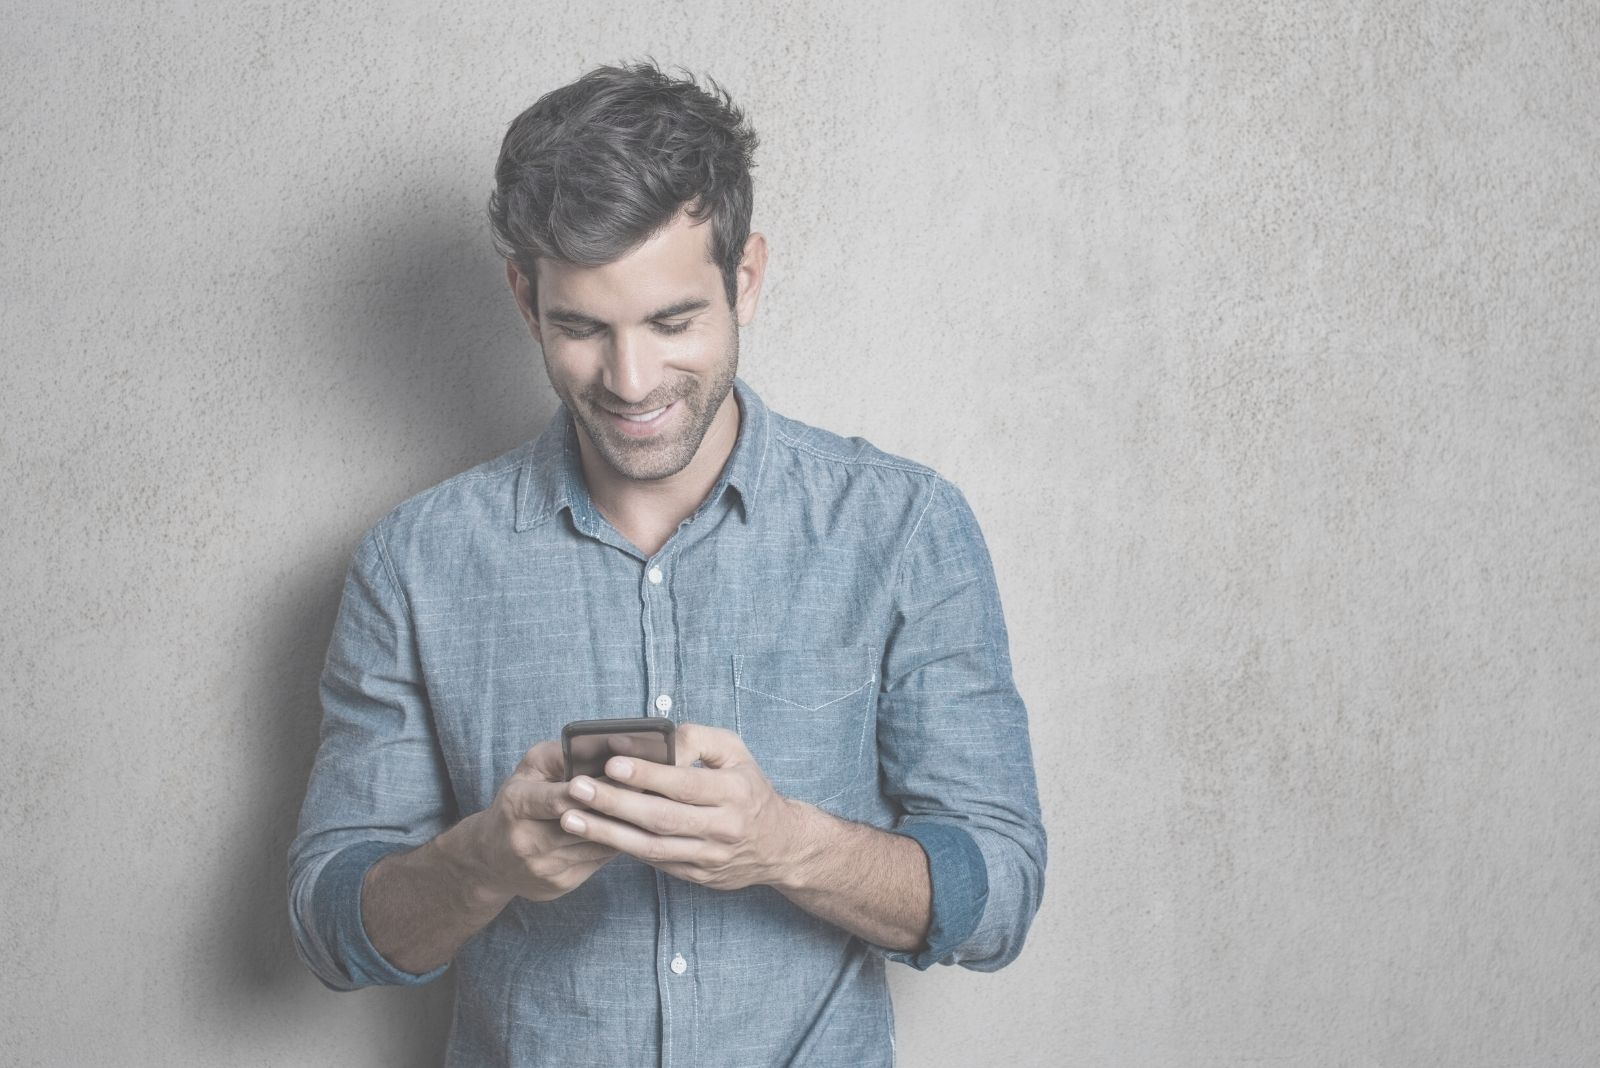 man texting and smiling and standing leaning on the white wall